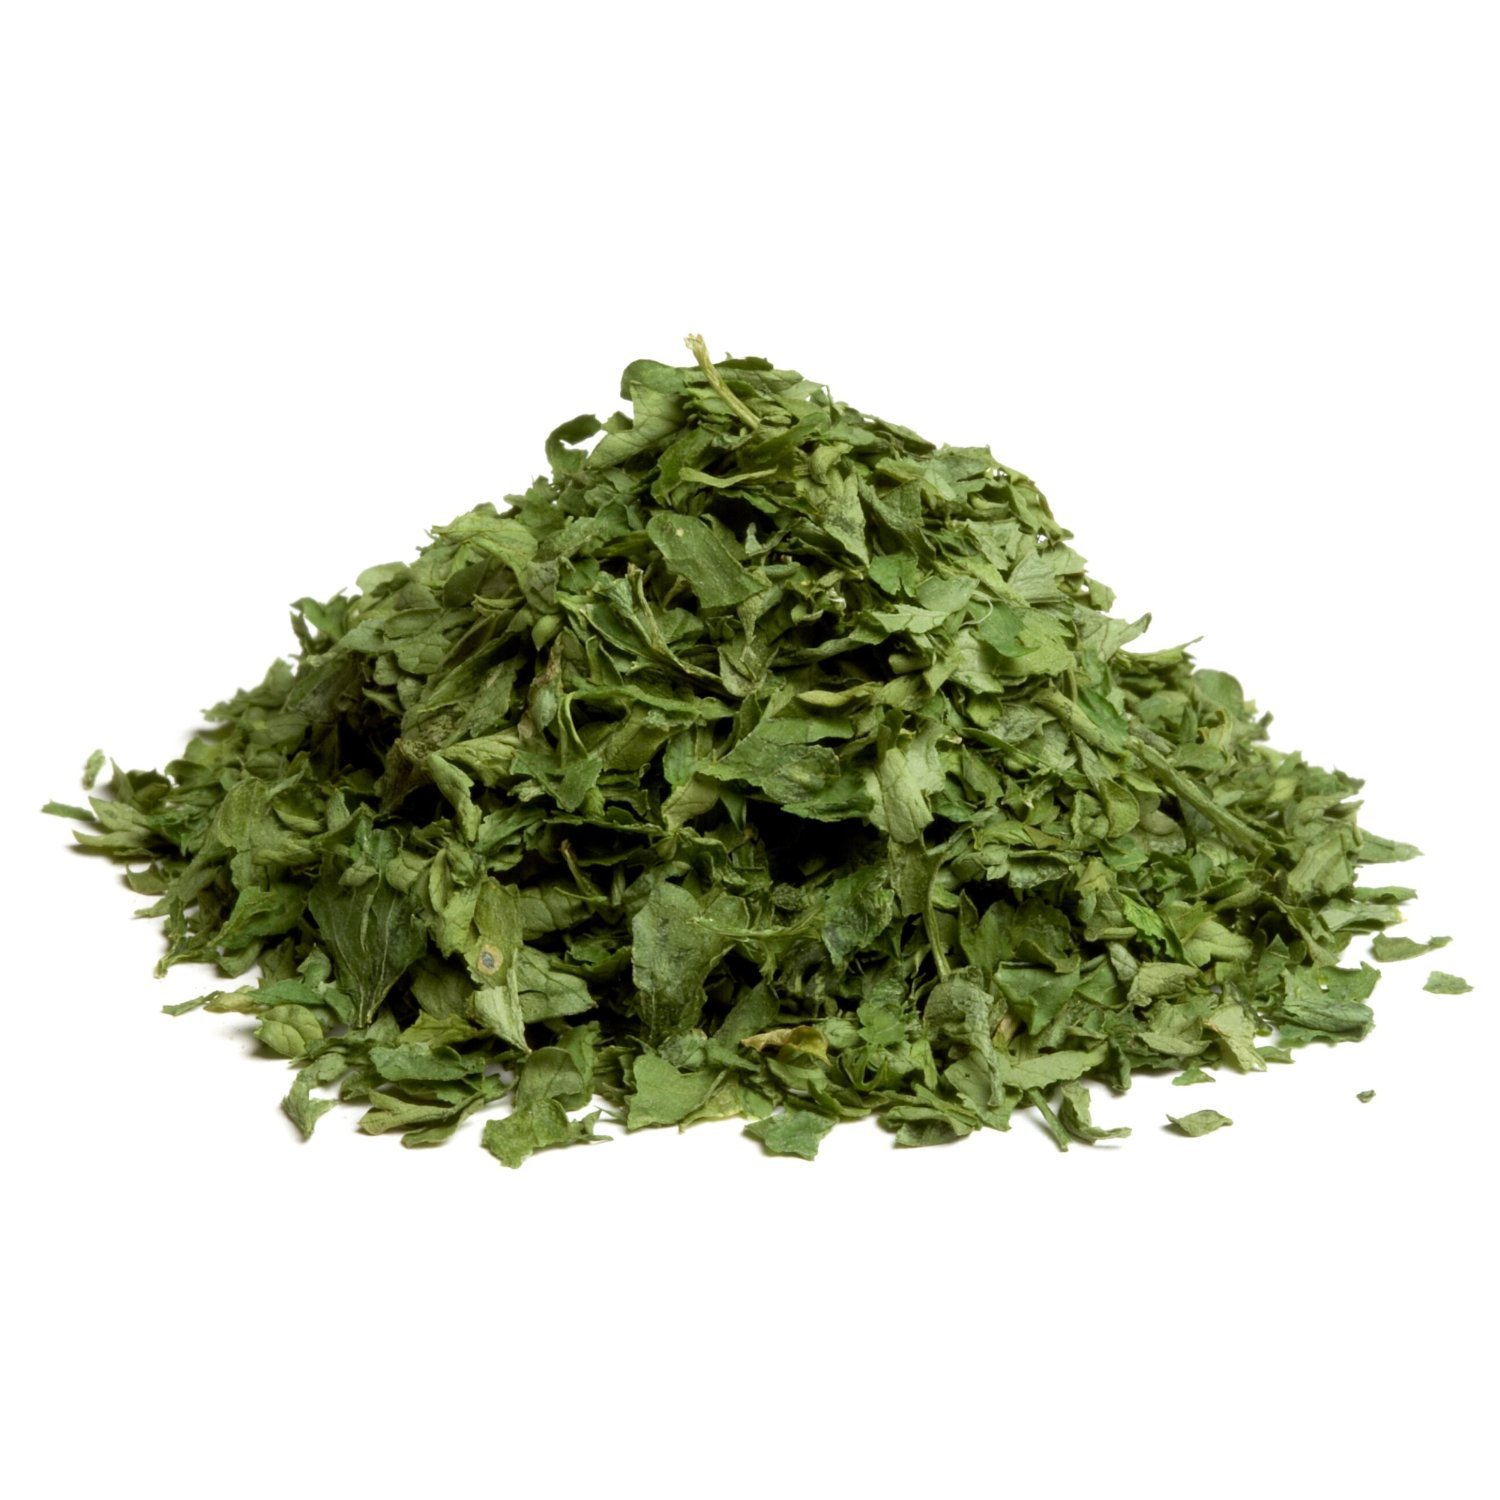 Durkee Parsley Flakes, 2.5-Pound